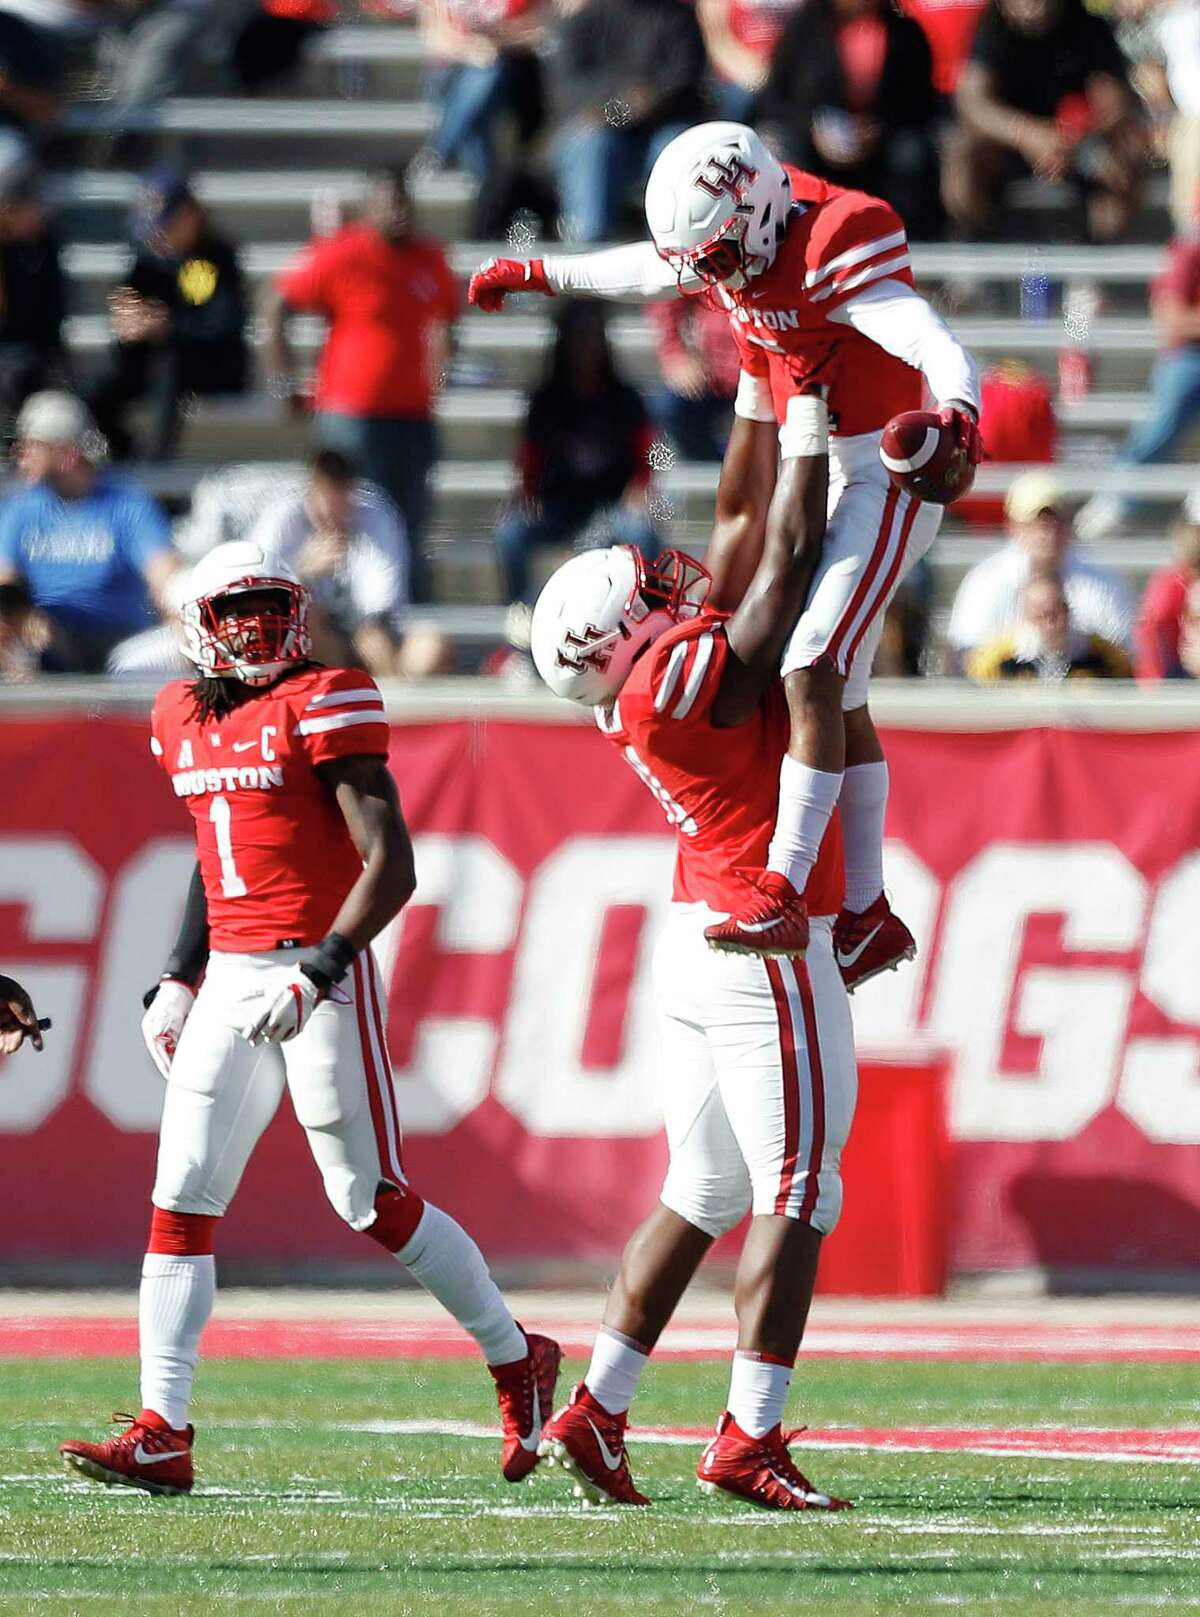 Houston Cougars cornerback Alexander Myres (18) gets lifted up by defensive end Nick Thurman (91) after Myres intercepted a pass intended for Navy Midshipmen running back Darryl Bonner in the second half of a college football game at TDECU Stadium, Friday, Nov. 24, 2017, in Houston. ( Karen Warren / Houston Chronicle )